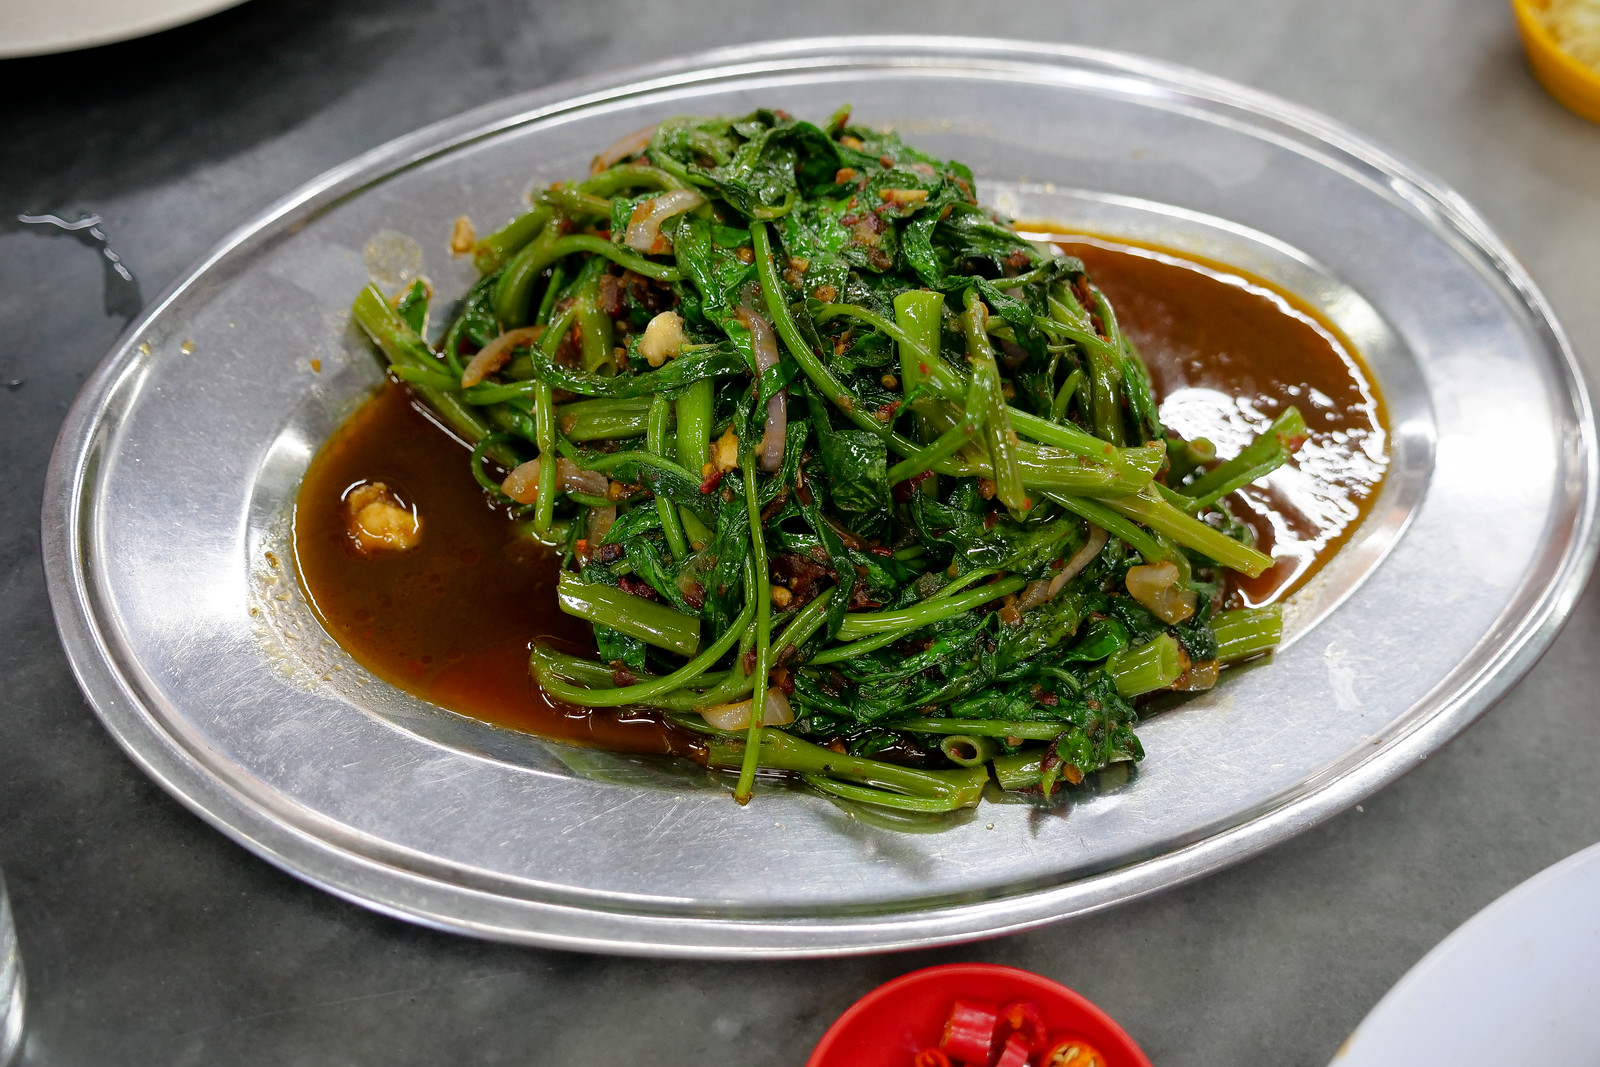 This vegetable fried with spicy sambal is mind-blowingly good, full of sour and spicy flavor, I could not get enough of this - it is a must-order dish at Mun Kee Steam Fish Head